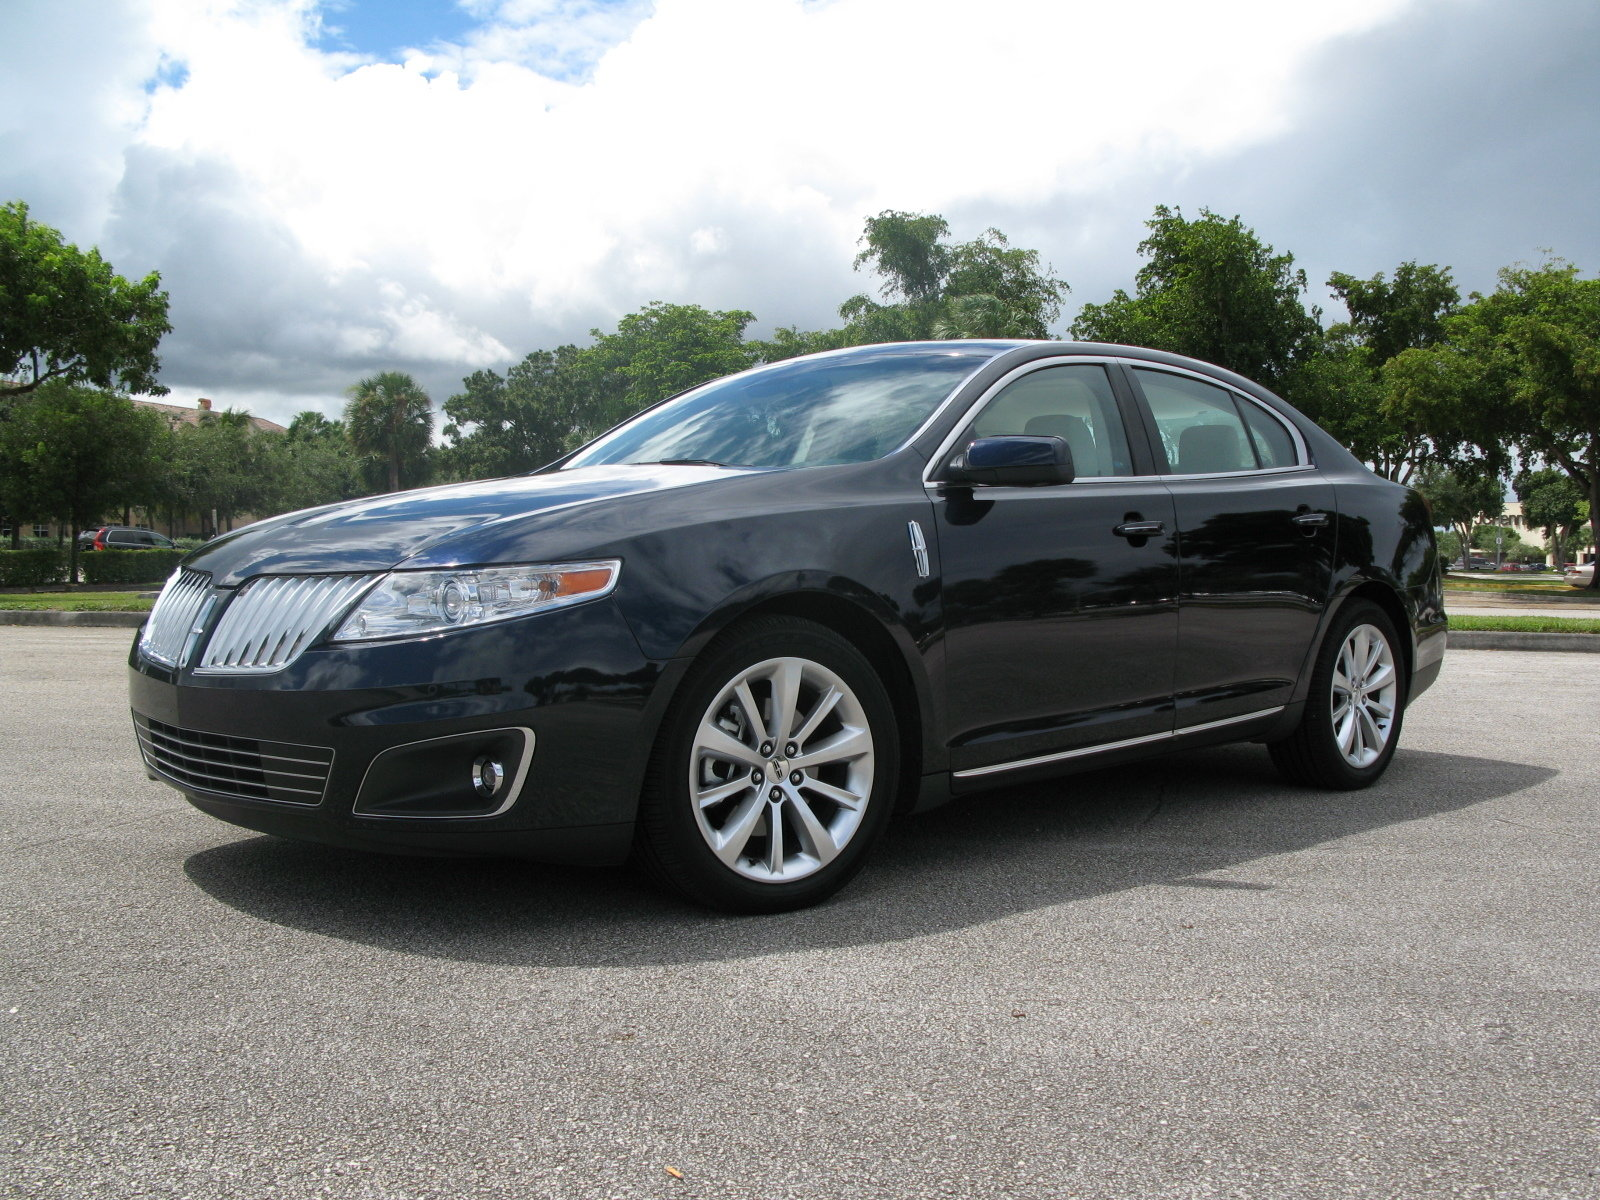 2009 lincoln mks awd picture 267354 car review top speed. Black Bedroom Furniture Sets. Home Design Ideas